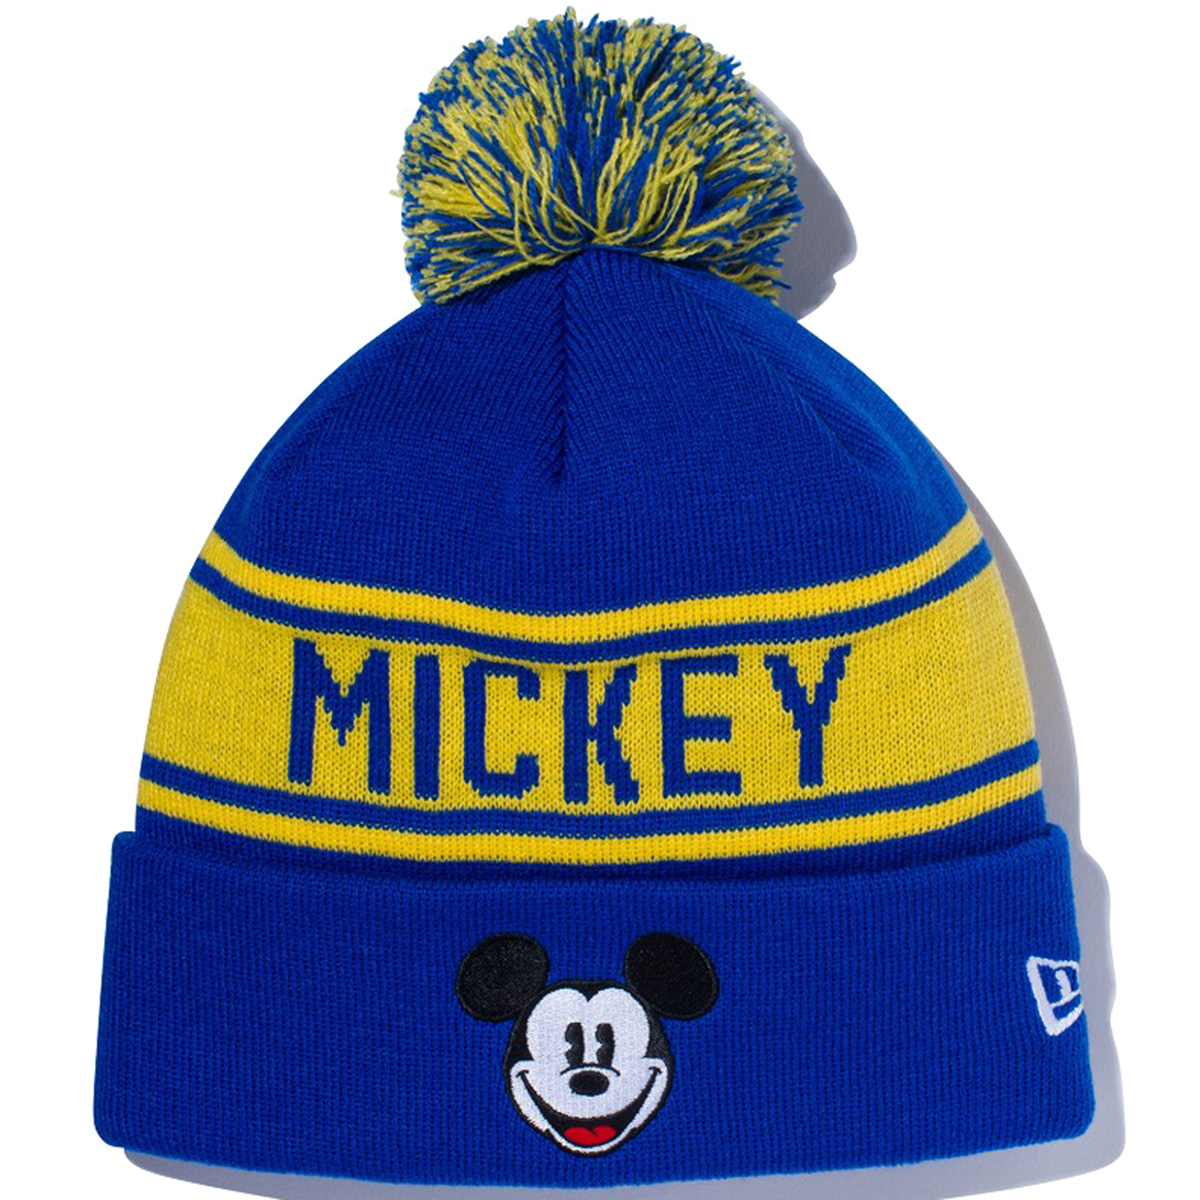 POM PON KNIT DISNEY MICKEY ニットキャップ